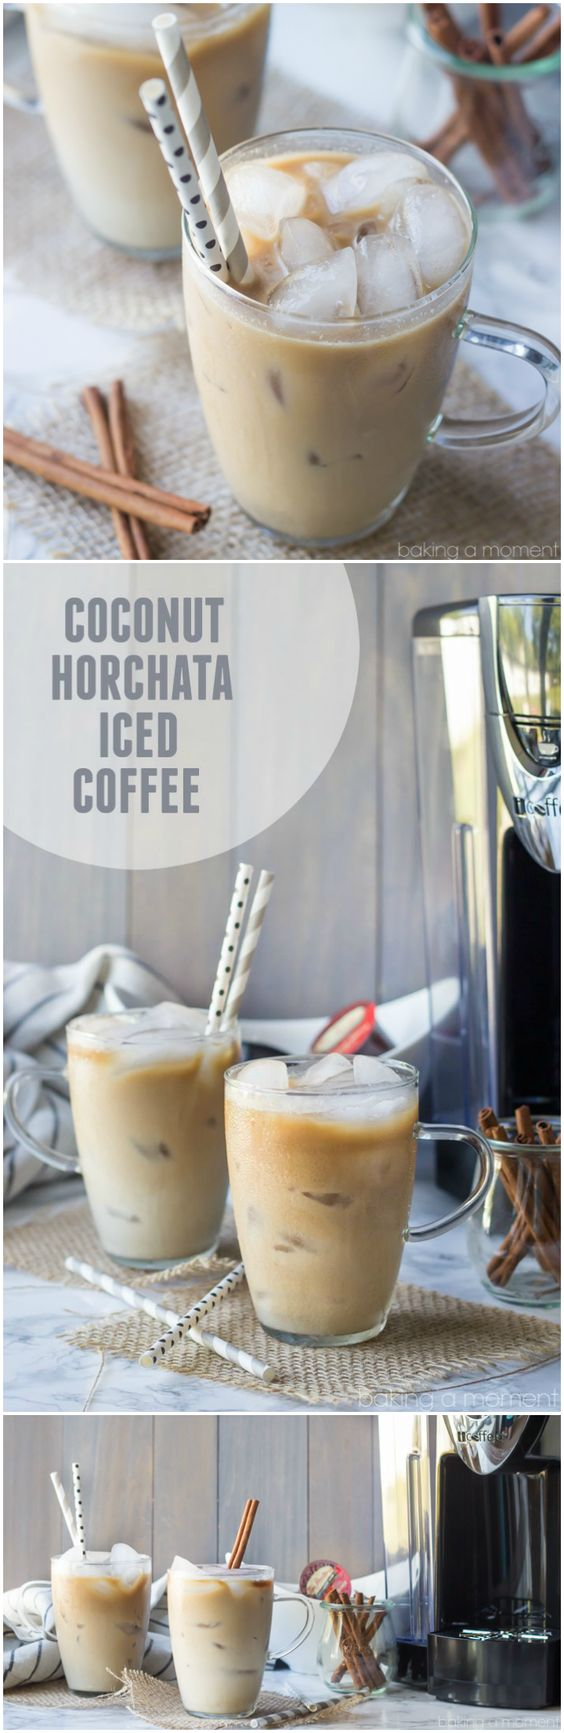 Coconut Horchata Iced Coffee: This iced coffee is so creamy I could hardly believe it was dairy-free.  Loved those hints of coconut, almond, and cinnamon too! #ad